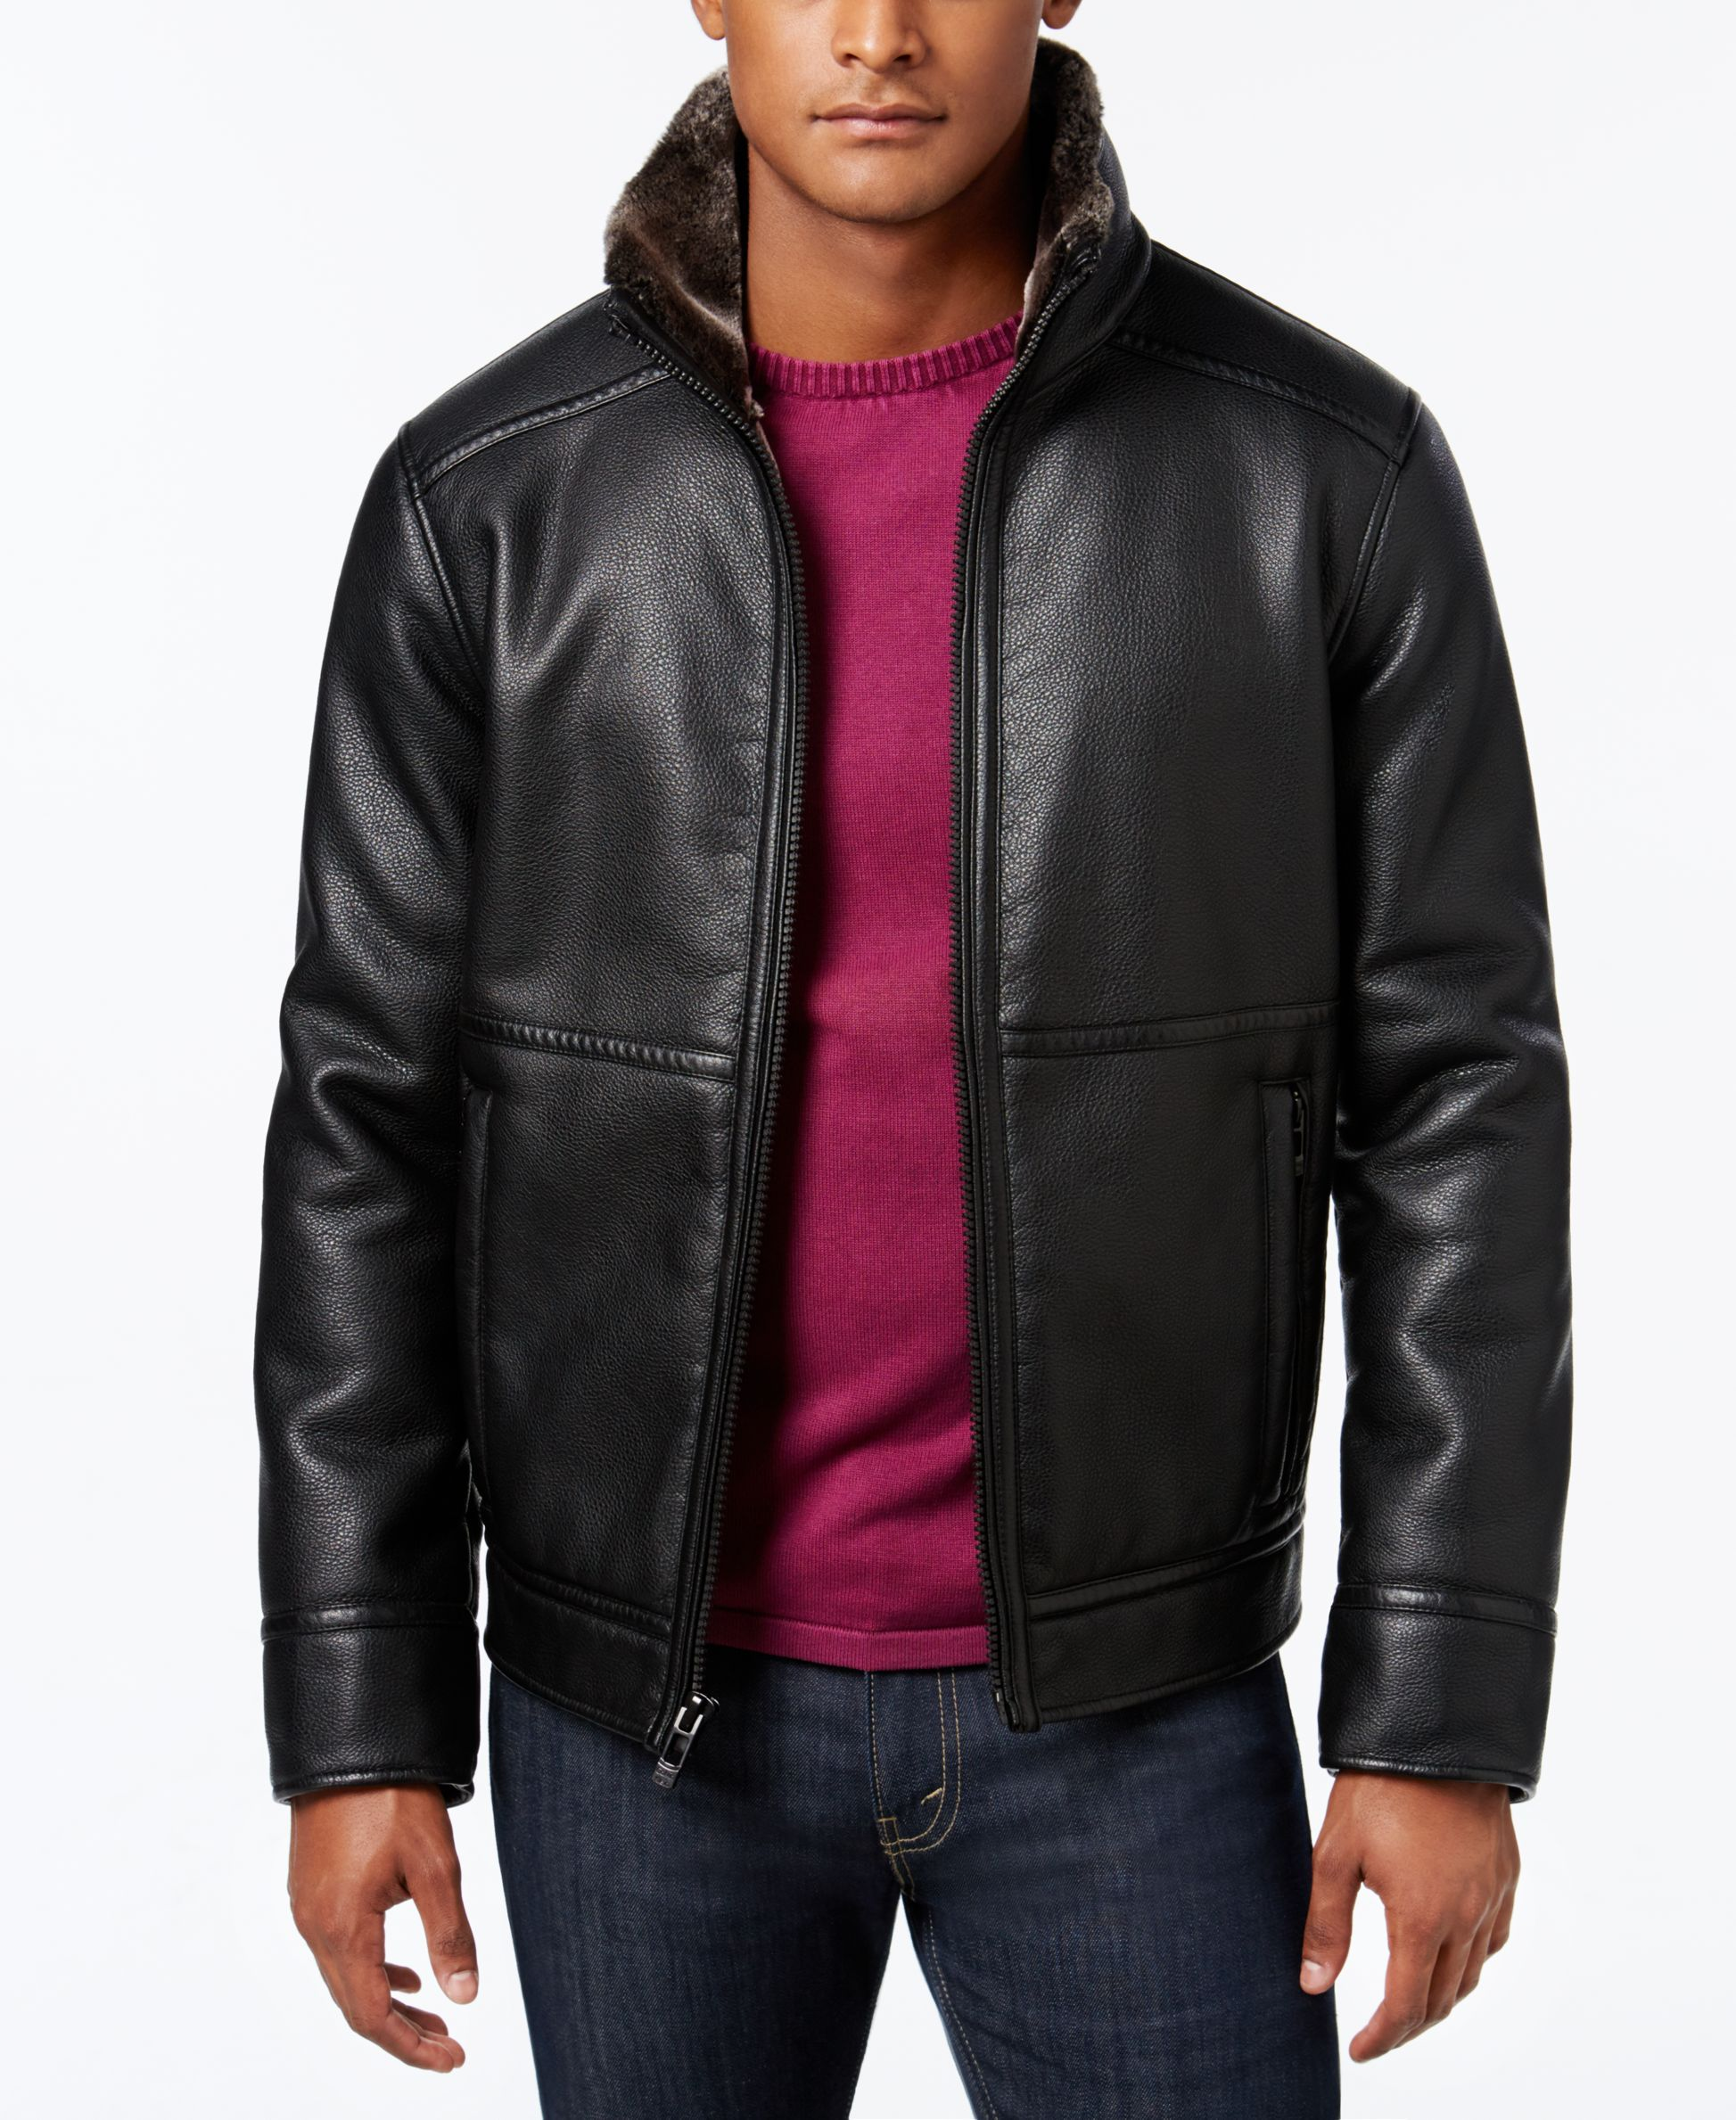 943bd47ee Calvin Klein Men's Pebble Faux-Leather Jacket with Faux Fur Lining ...